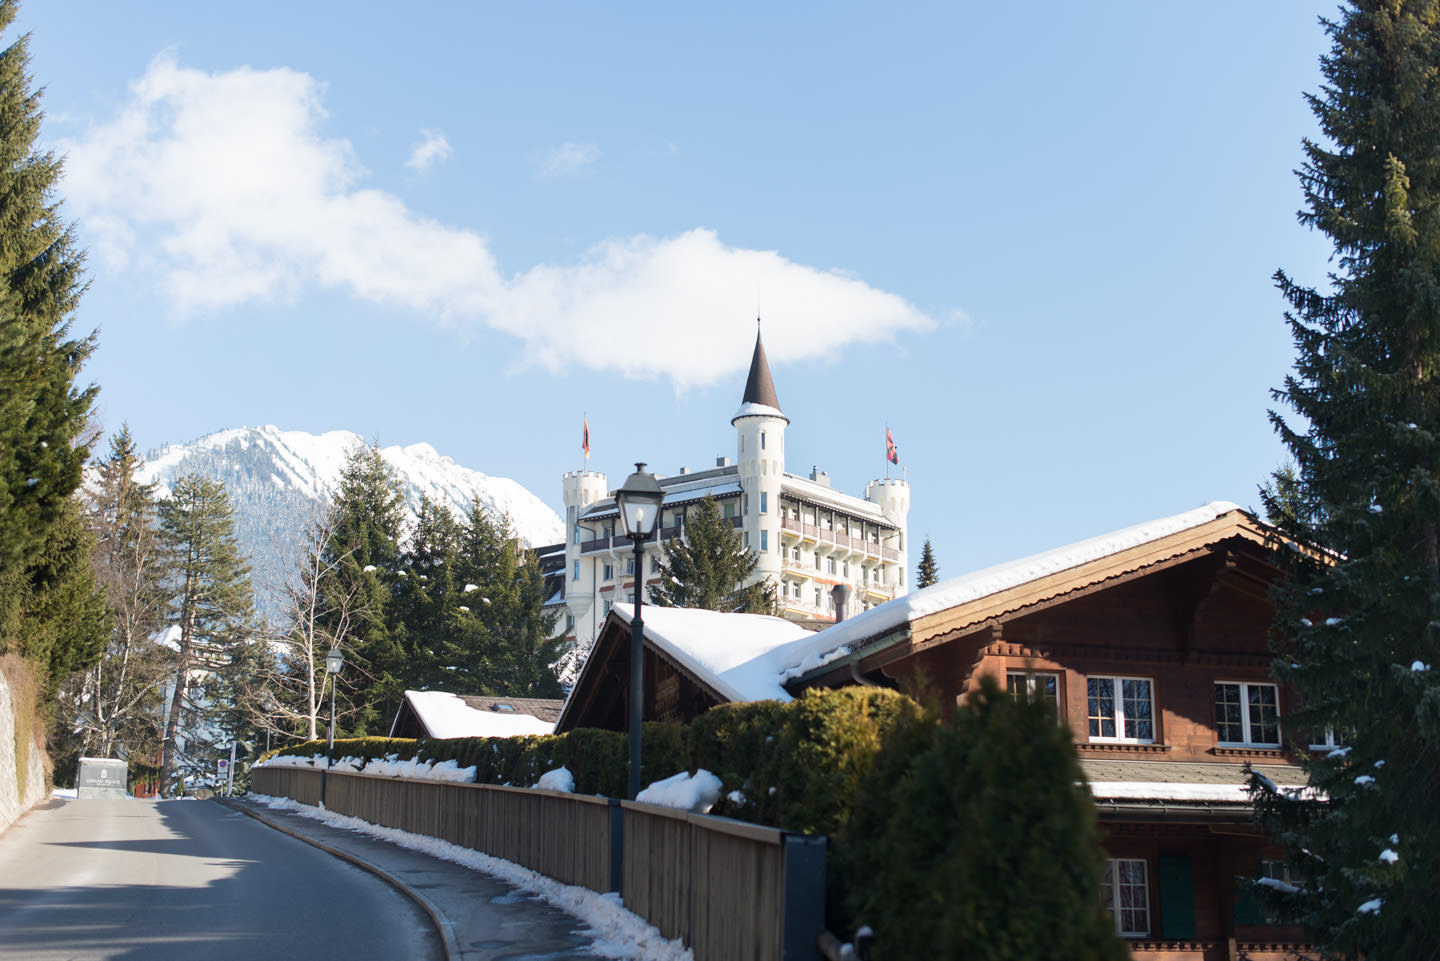 Blog-Mode-And-The-City-Lifestyle-Parenthese-Enchantee-Gstaad-Suisse-Gstaad-Palace